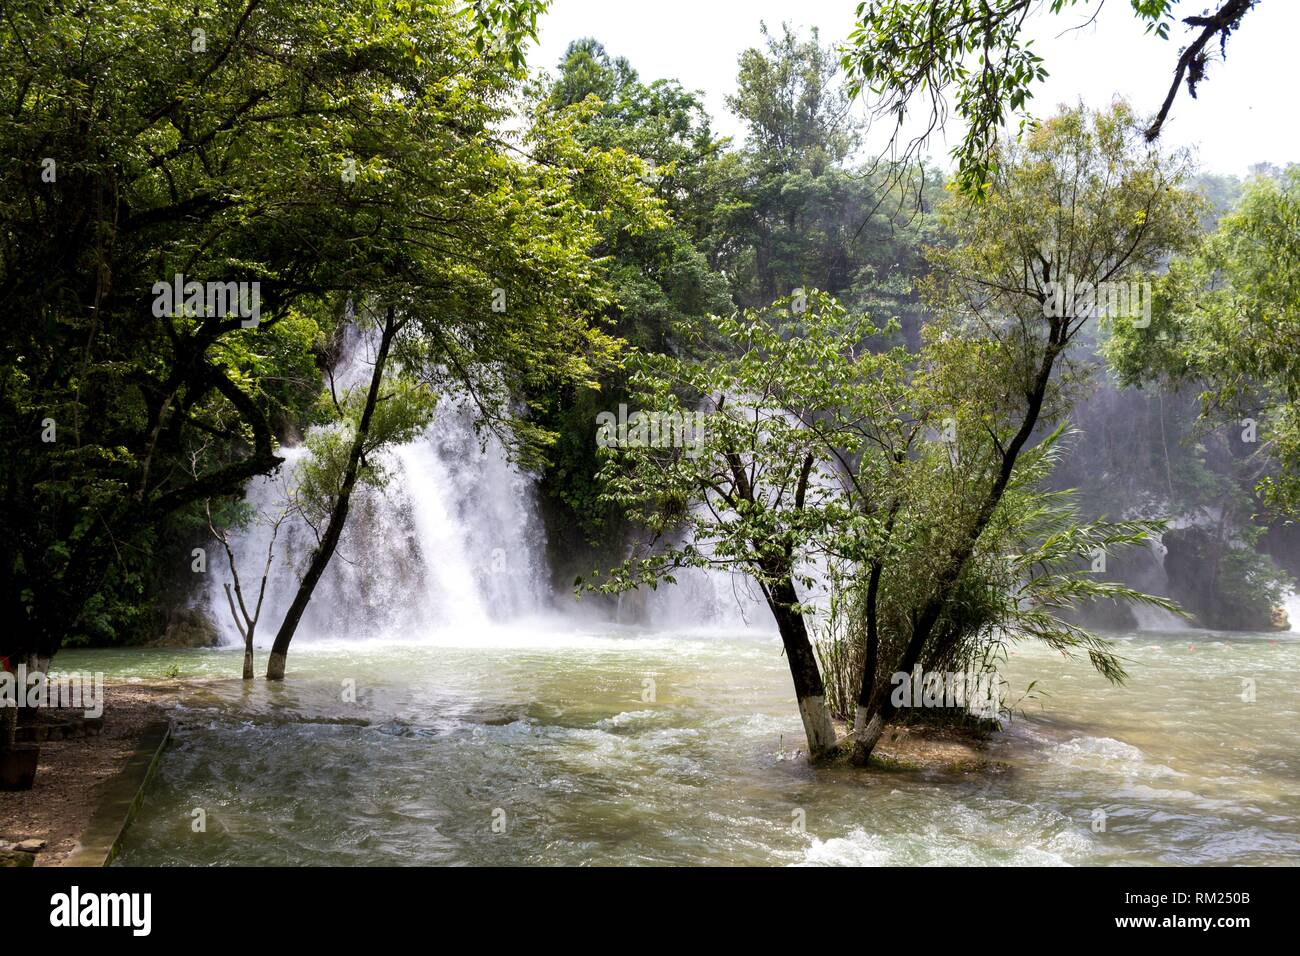 Waterfalls in the forest. Tamasopo, San Luis Potosí. Mexico. - Stock Image